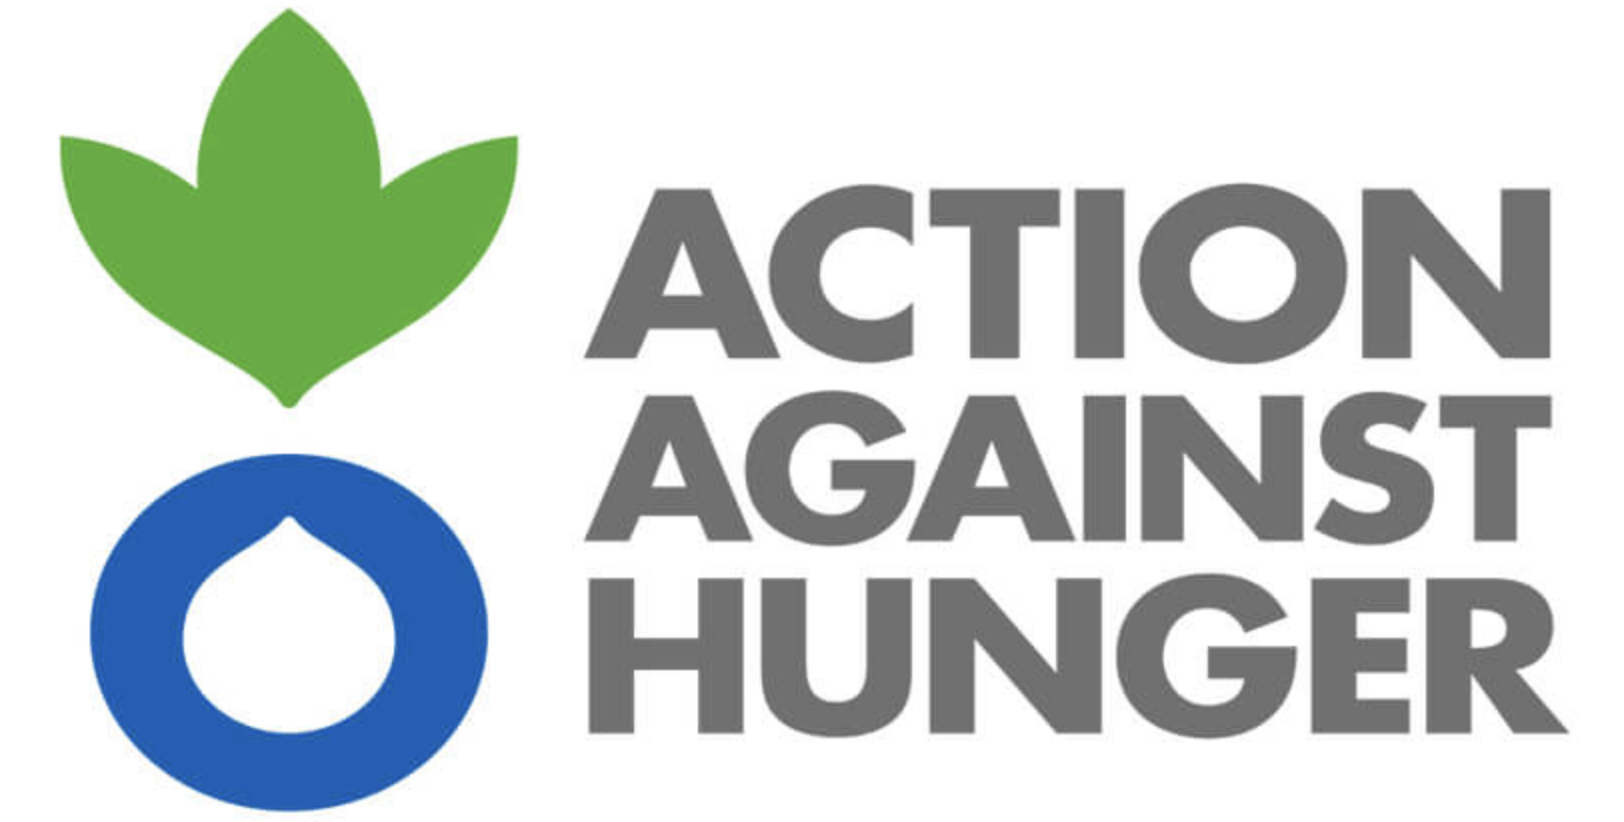 """Action Against Hunger is committed to ending world hunger. """"The mission of Action Against Hunger is to save lives by eliminating hunger through the prevention, detection, and treatment of malnutrition, especially during and after emergency situations of conflict, war, and natural disaster. From crisis to sustainability, we tackle the underlying causes of malnutrition and its effects by using our expertise in nutrition, food security, water and sanitation, health and advocacy."""""""